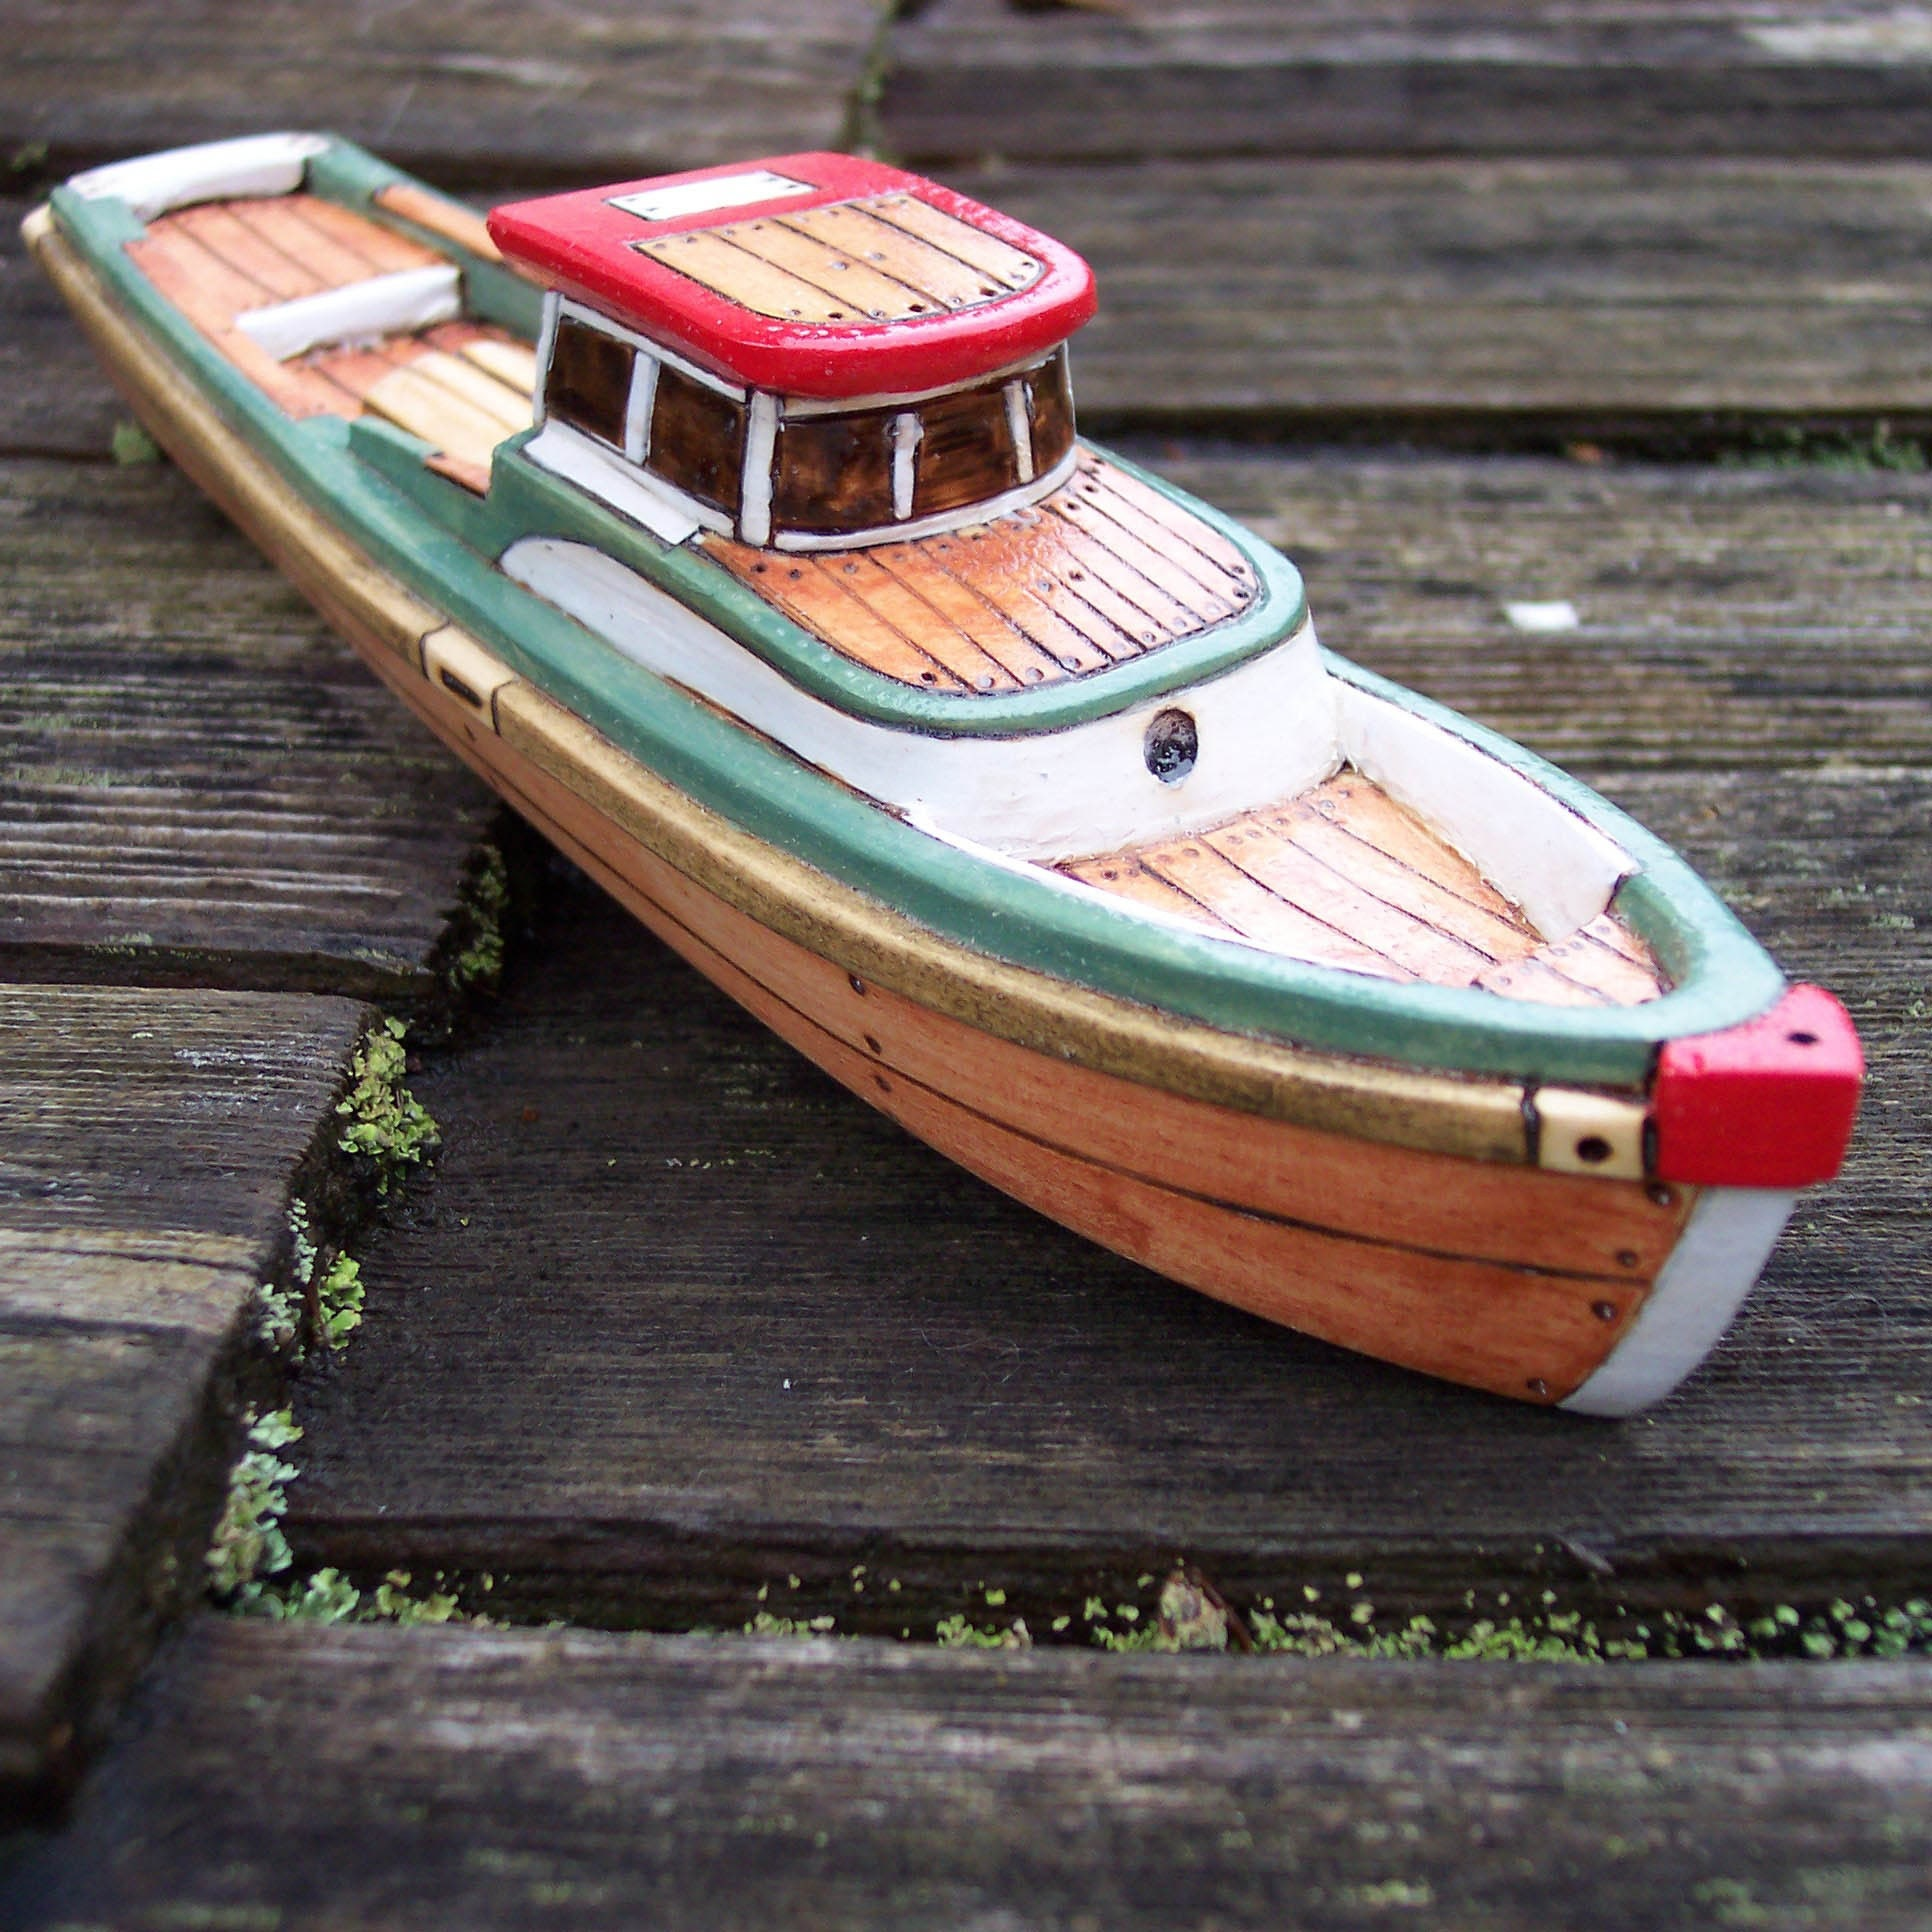 The Green Lobster Wooden Toy Boat by FriendlyFairies on Etsy